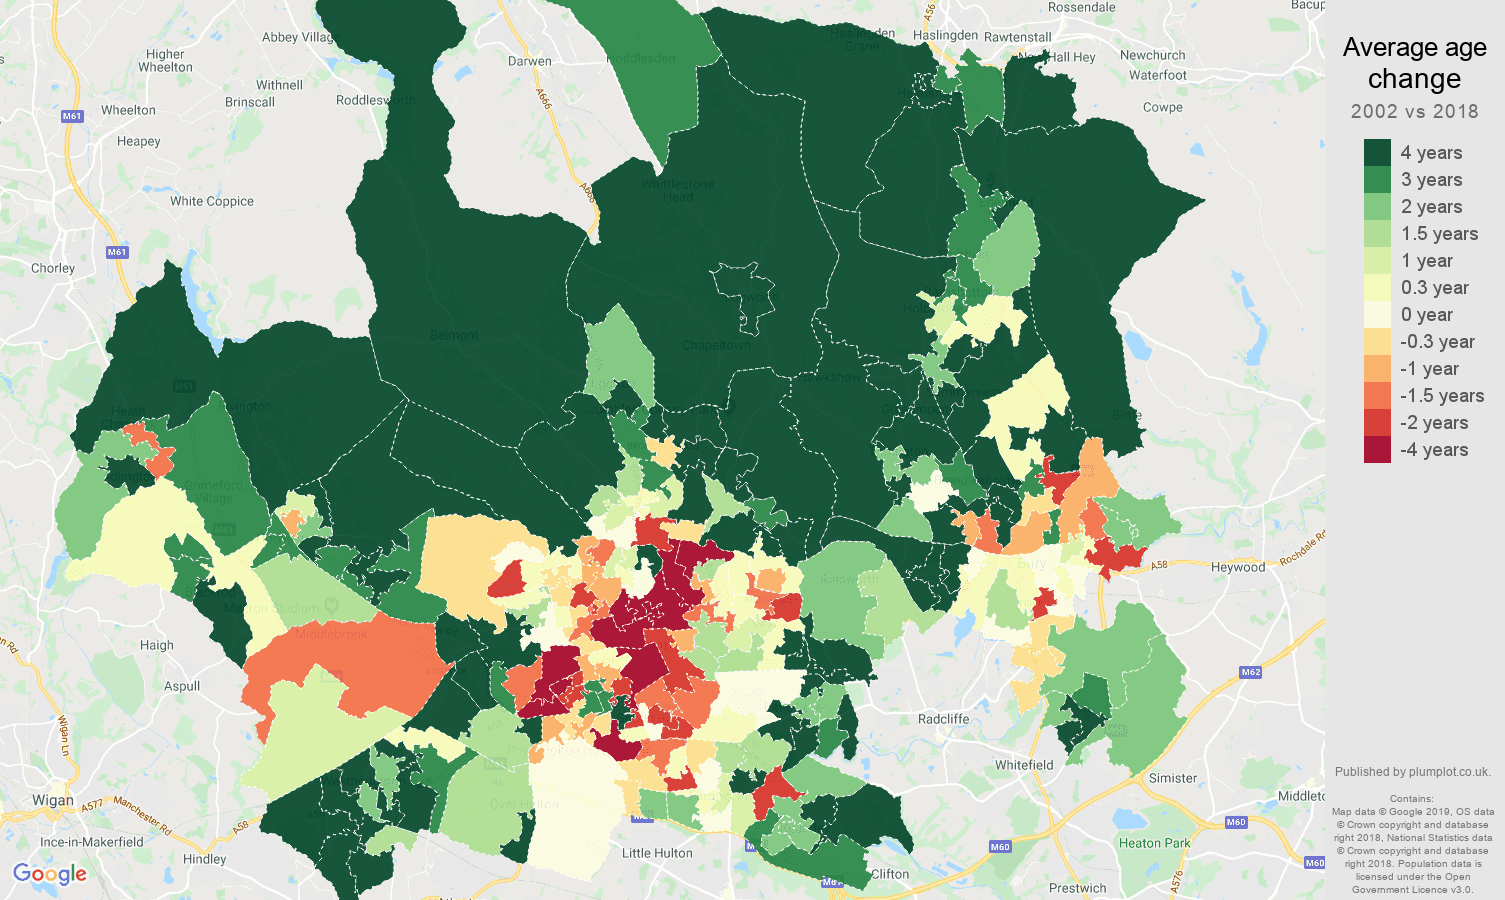 Bolton average age change map